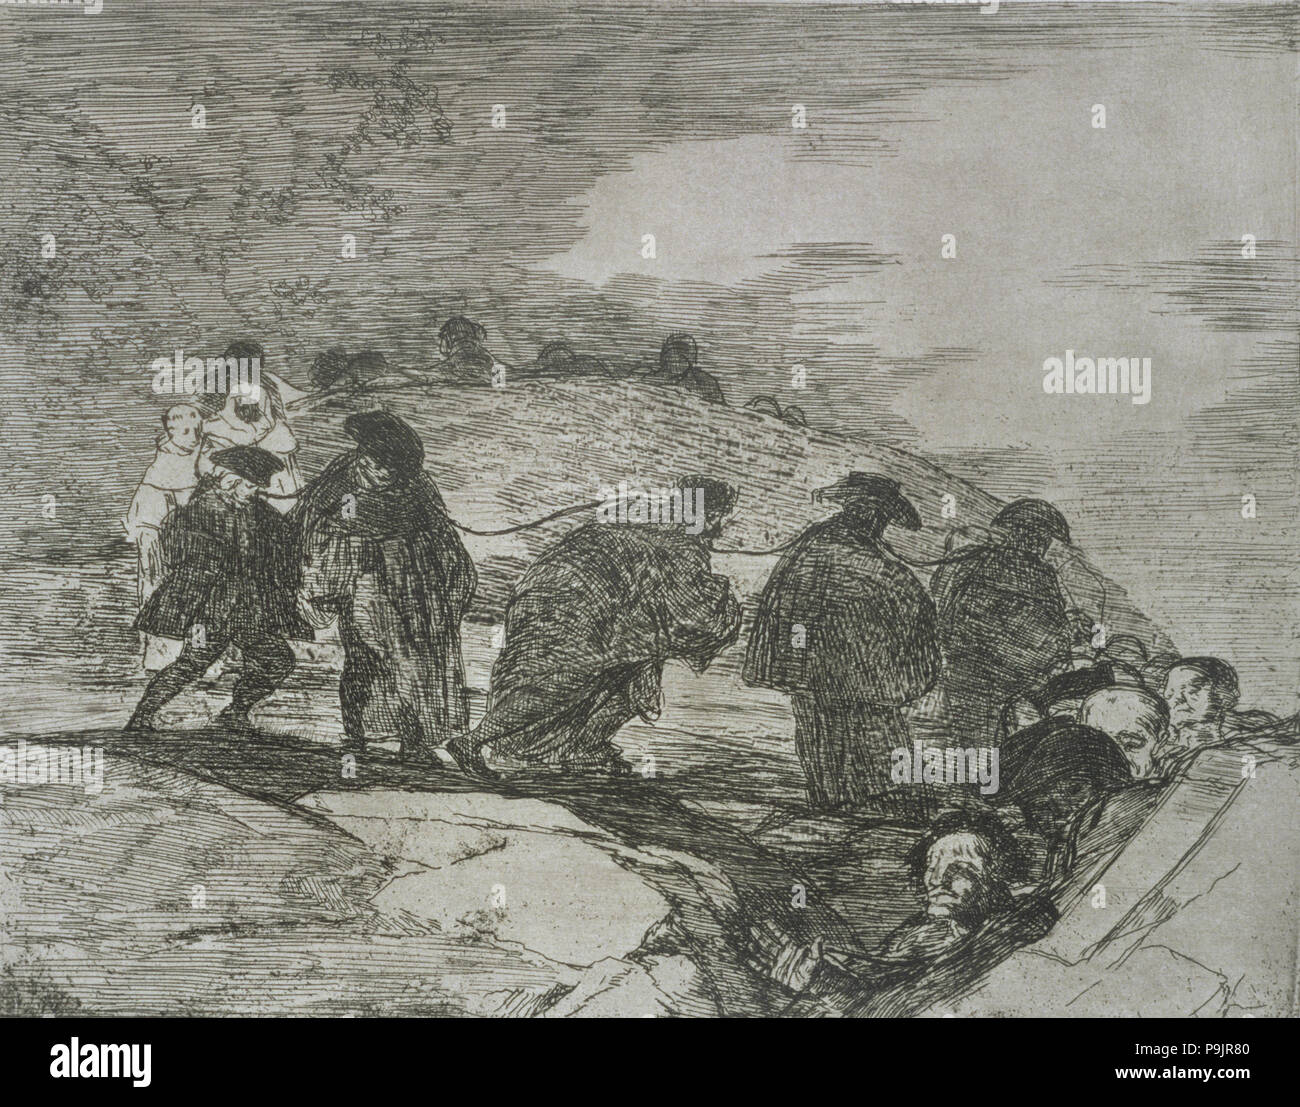 The Disasters of War, a series of etchings by Francisco de Goya (1746-1828),  plate 70: 'No saben el camino' (They do not know the way), first edition,